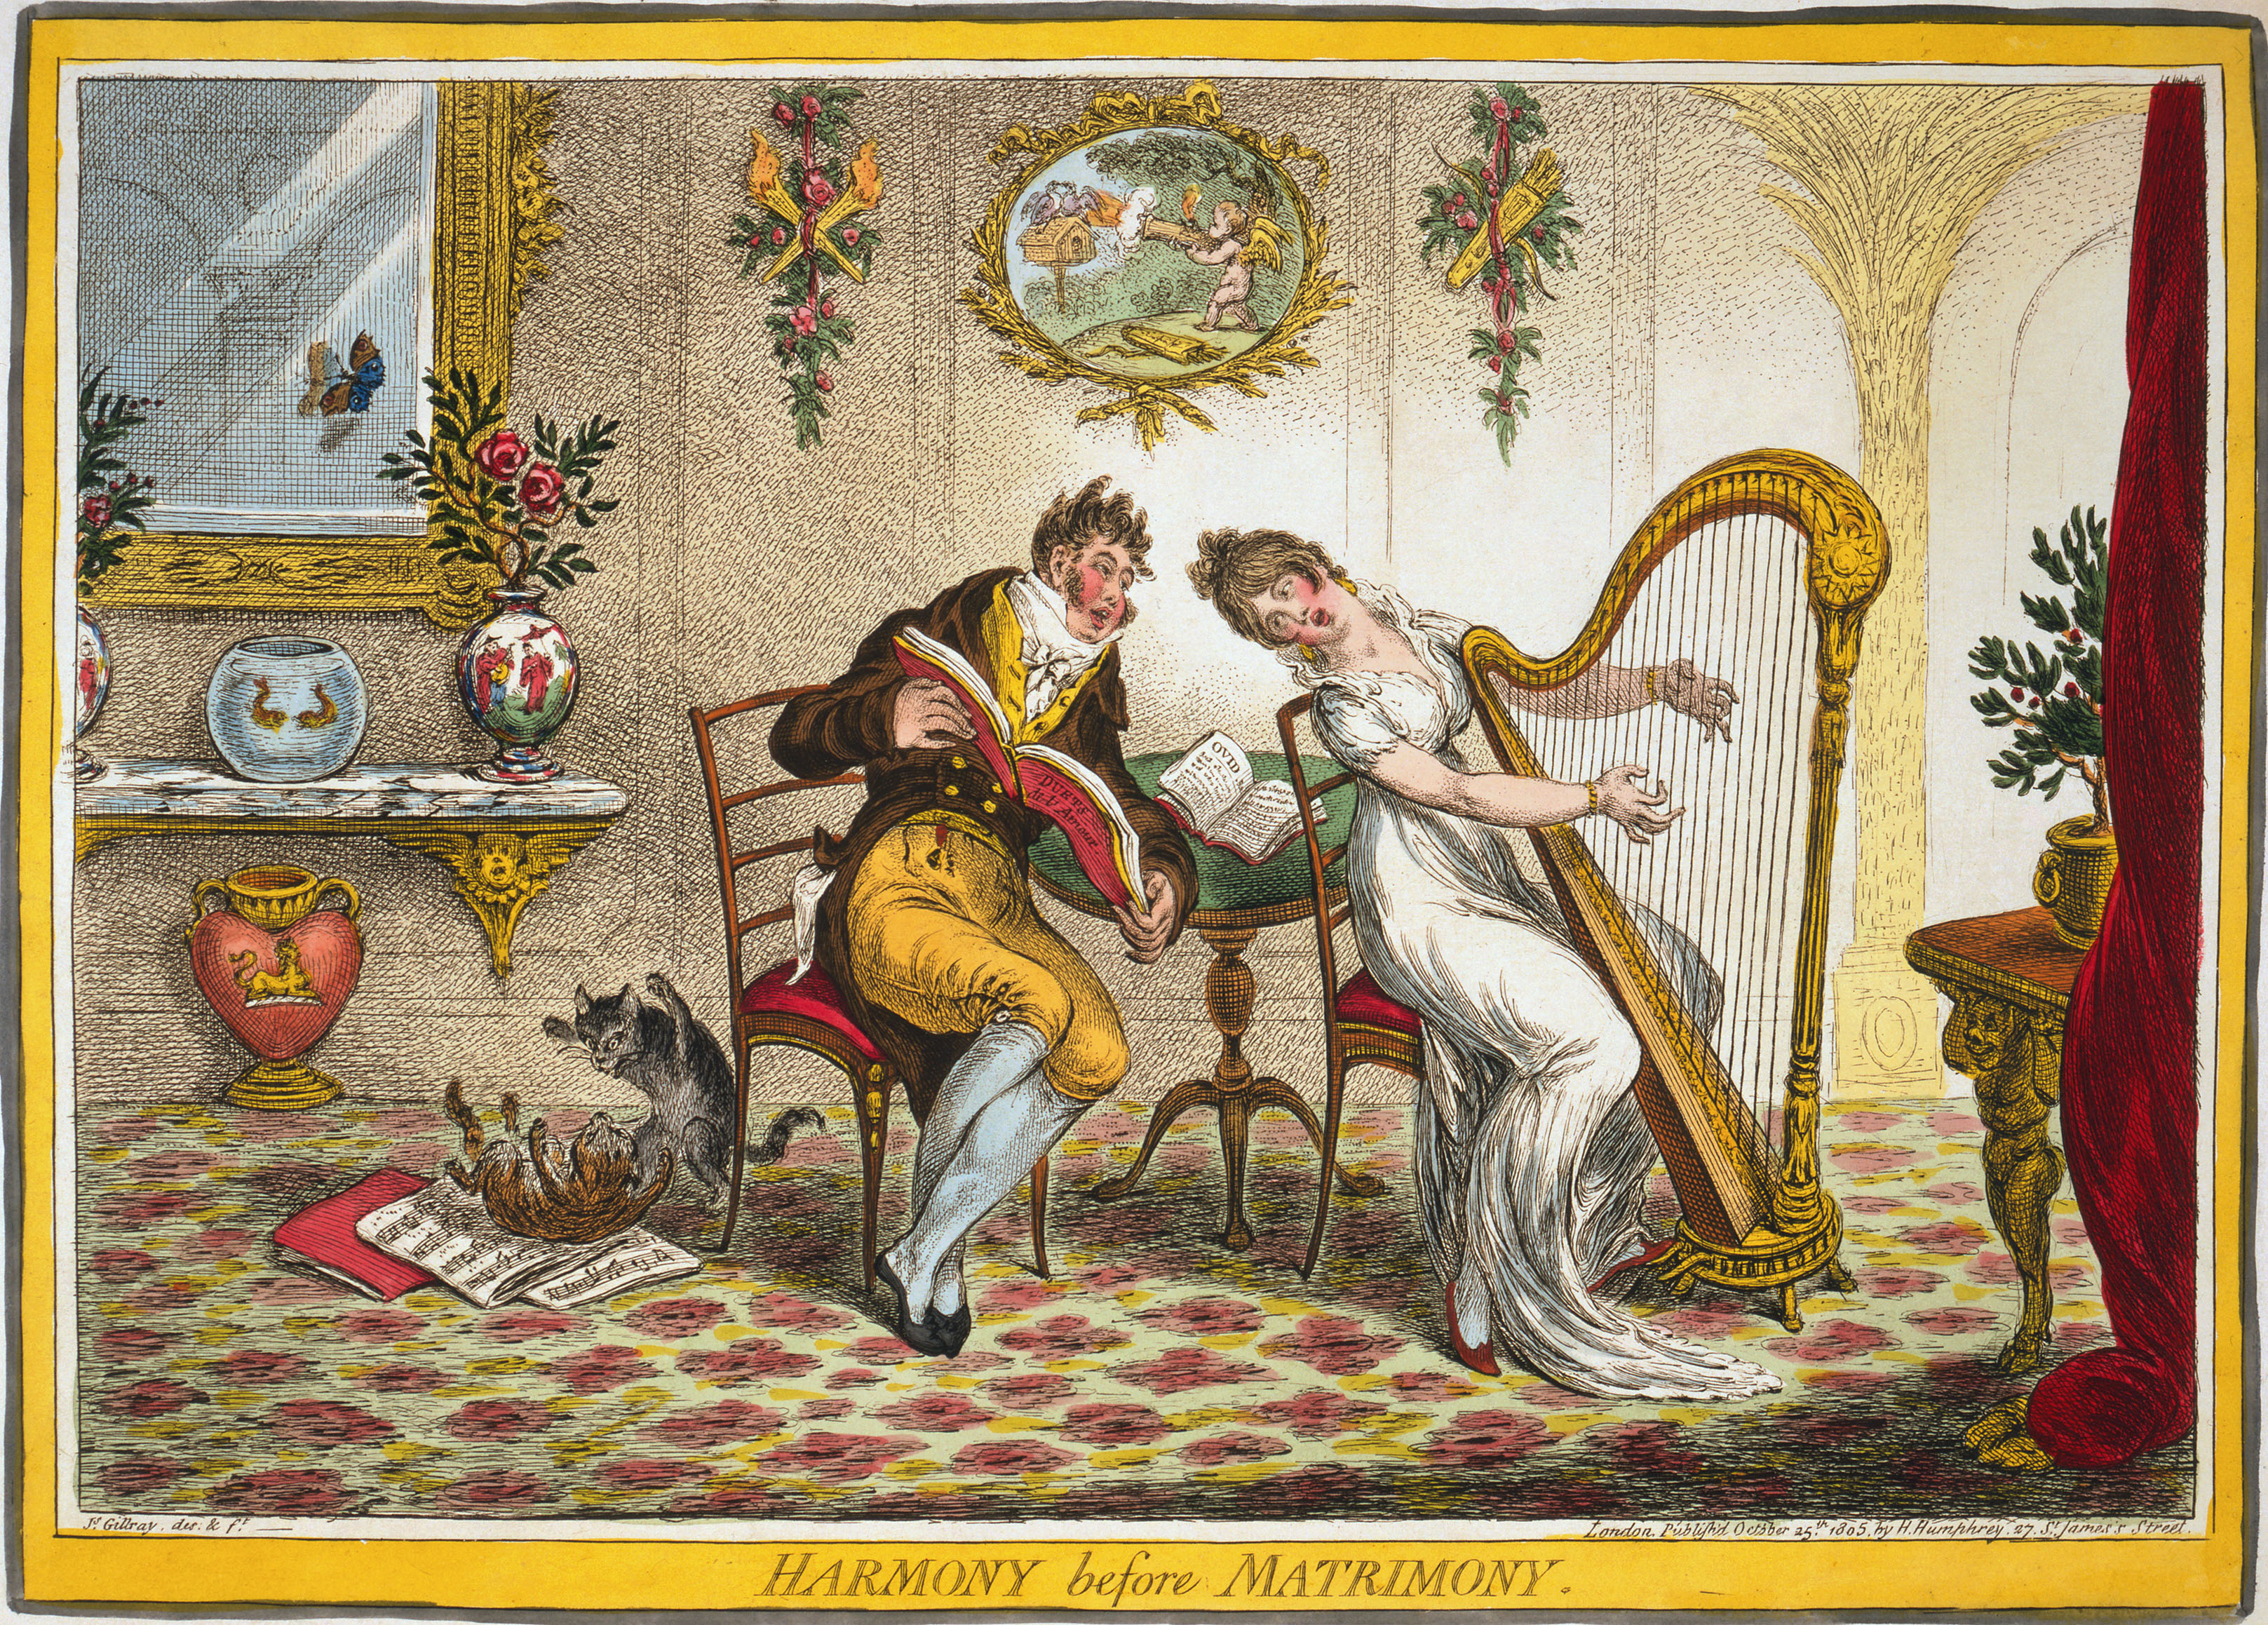 1805 gillray harmony before matrimony